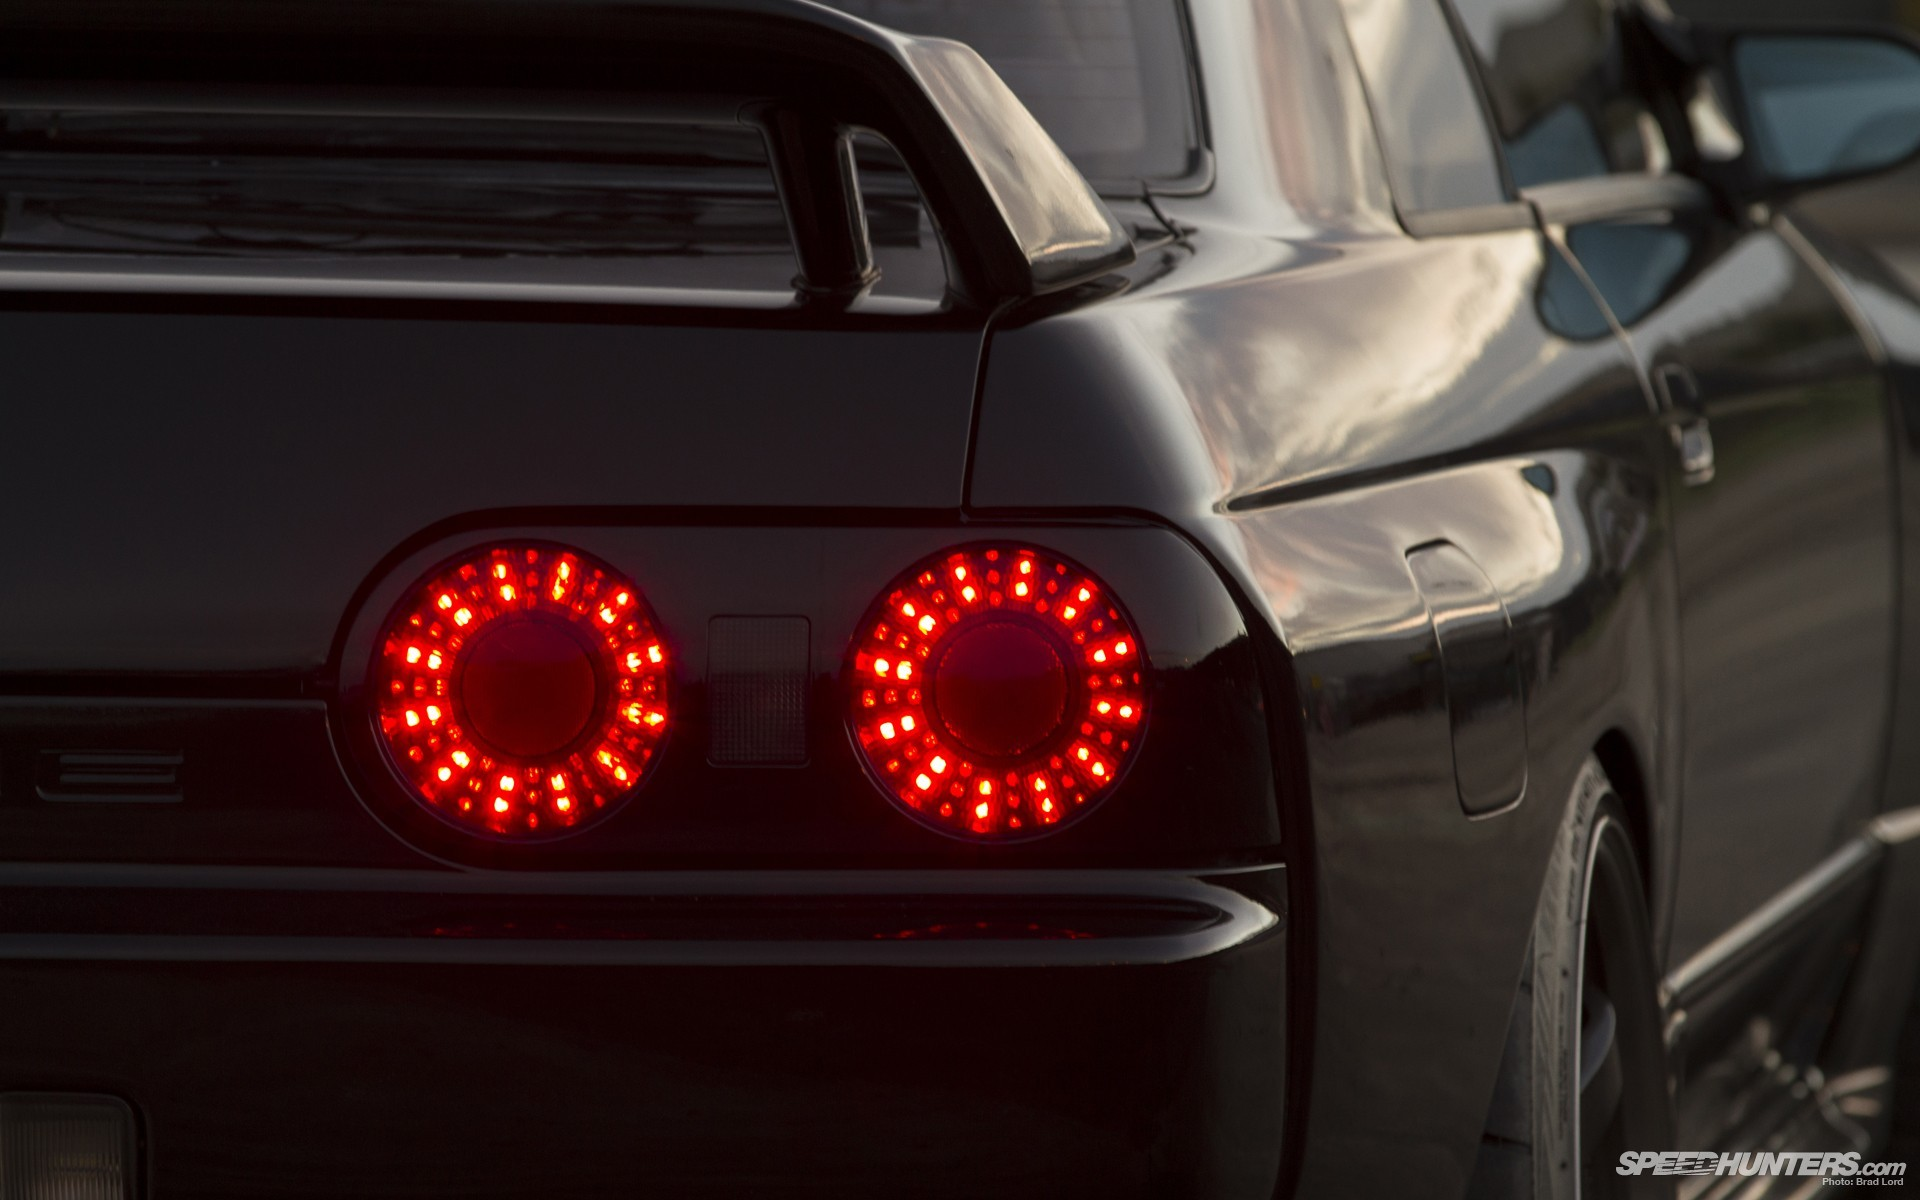 Cars Hd Wallpapers 1080p For Pc Bmw Car Speedhunters Nissan Skyline R32 Wallpapers Hd